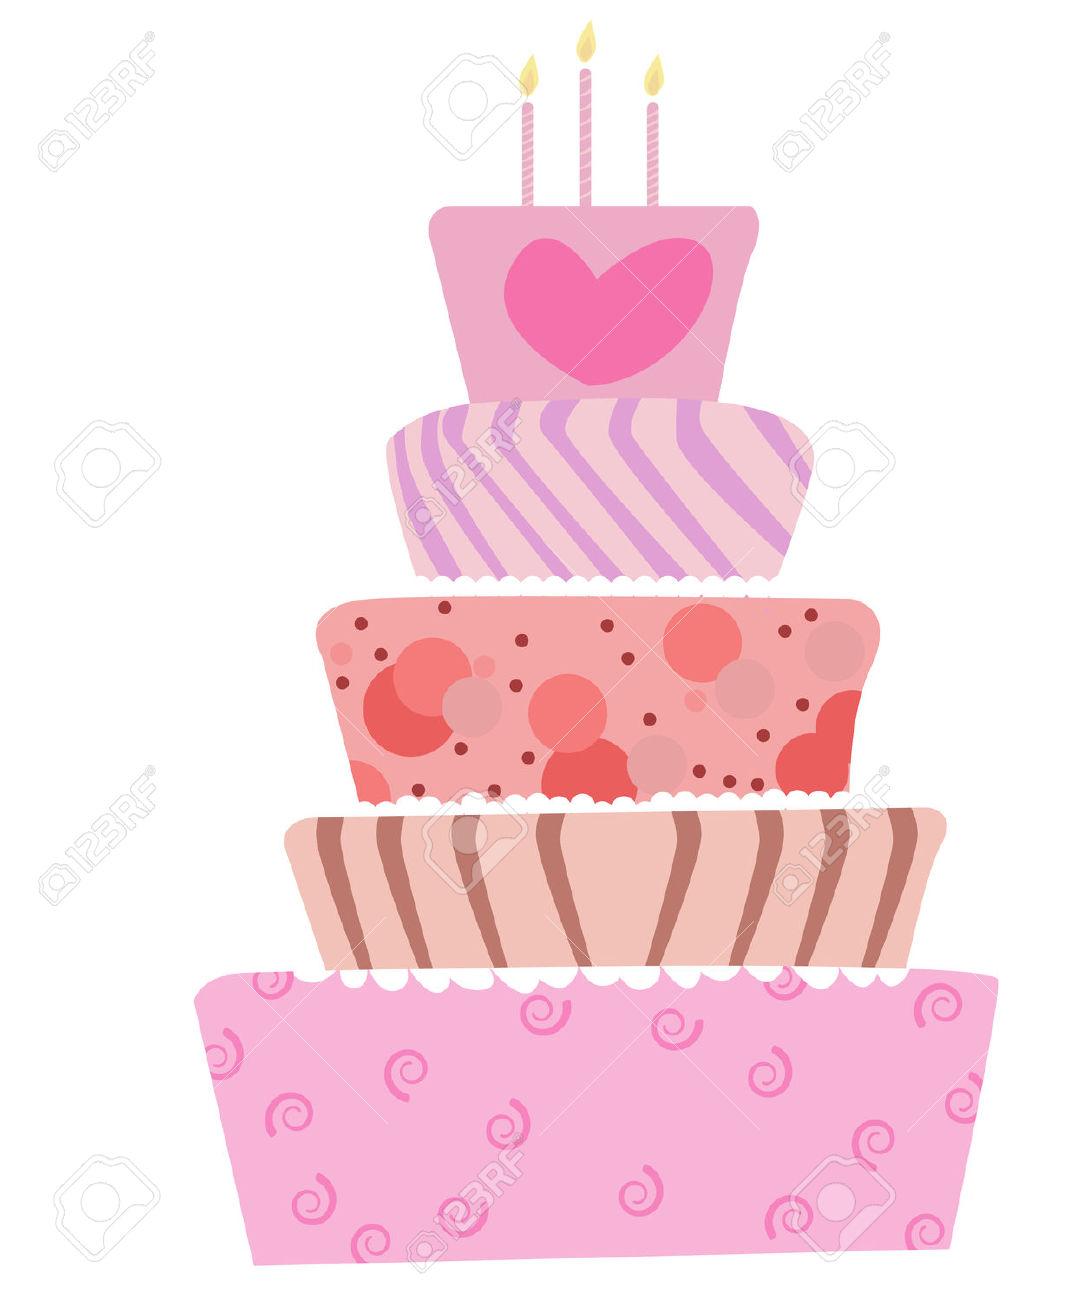 Birthday cake cute clipart graphic free library Illustration Of A Cute Cake For Birthday Or Wedding Royalty Free ... graphic free library